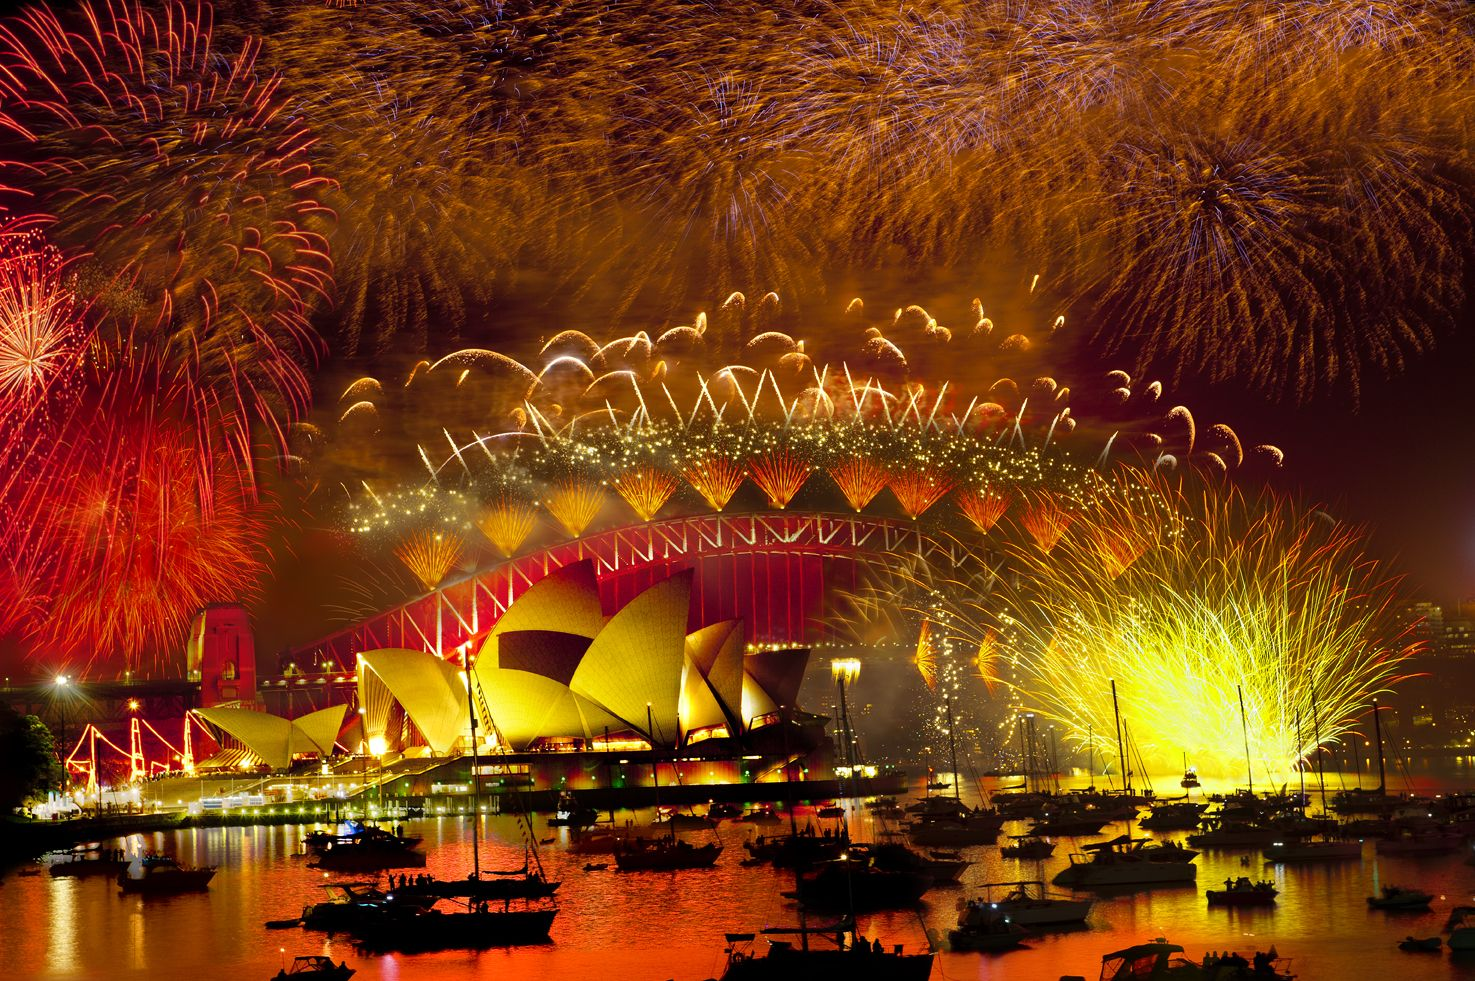 Sydney New Years Eve Fireworks New Year Fireworks Christmas Vacation Destinations